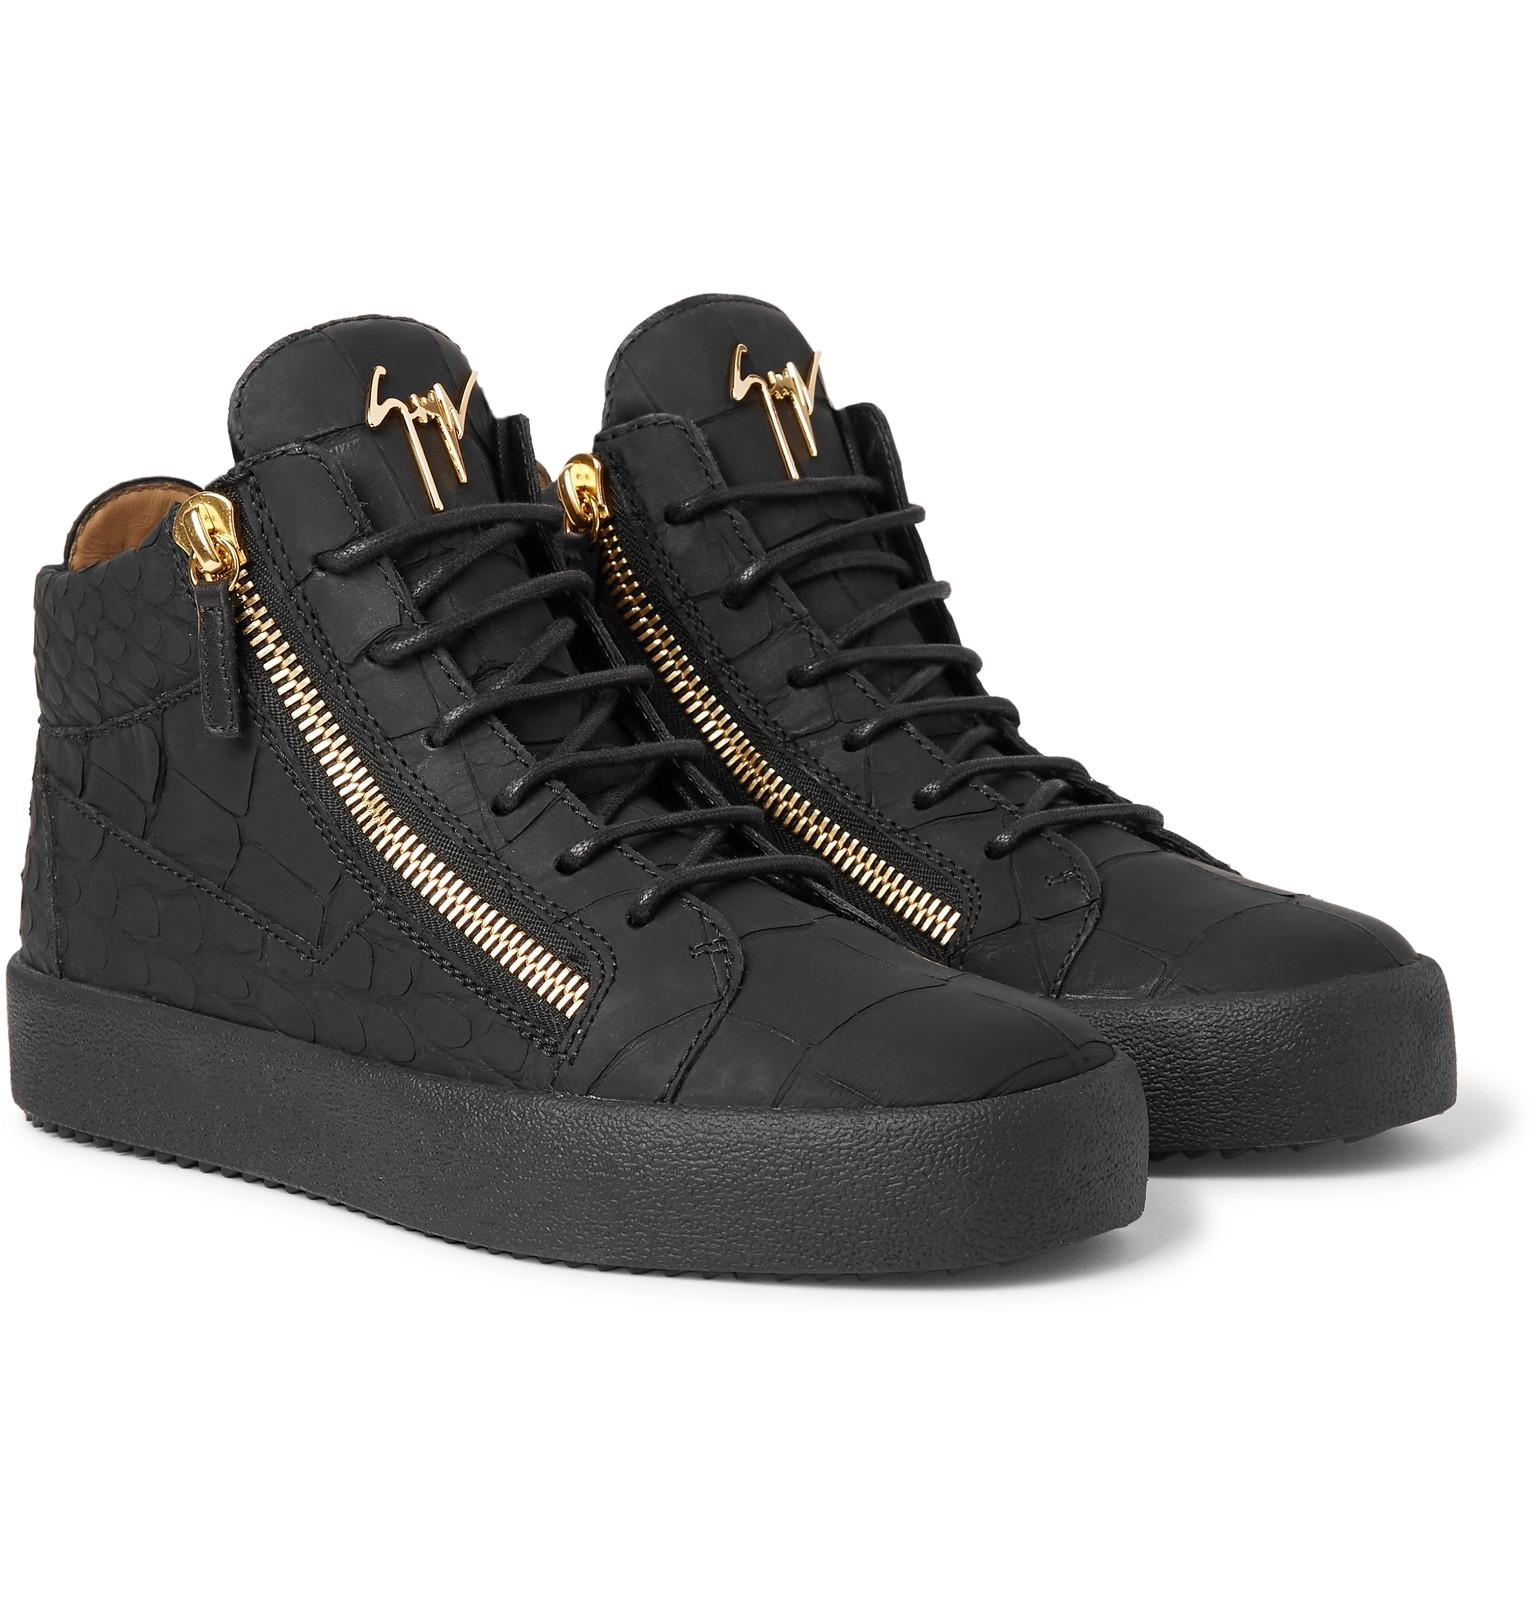 Logoball Croc-effect Leather High-top Sneakers Giuseppe Zanotti 10iWRm